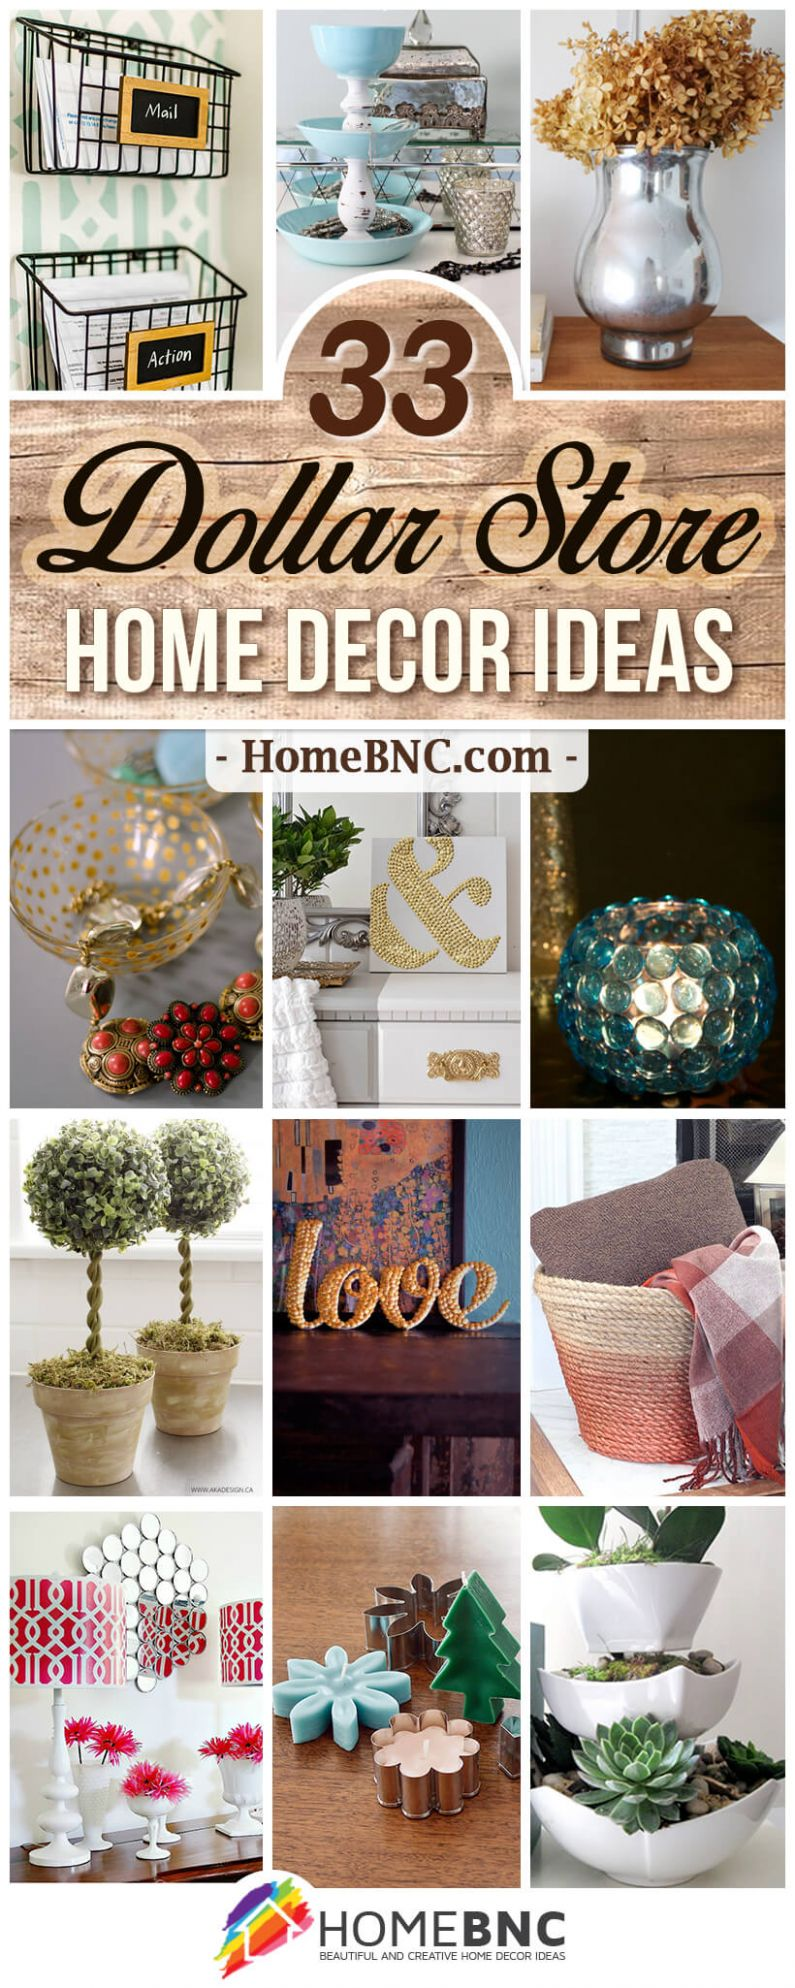 8 Best DIY Dollar Store Home Decor Ideas and Designs for 8 - diy home decor from dollar tree